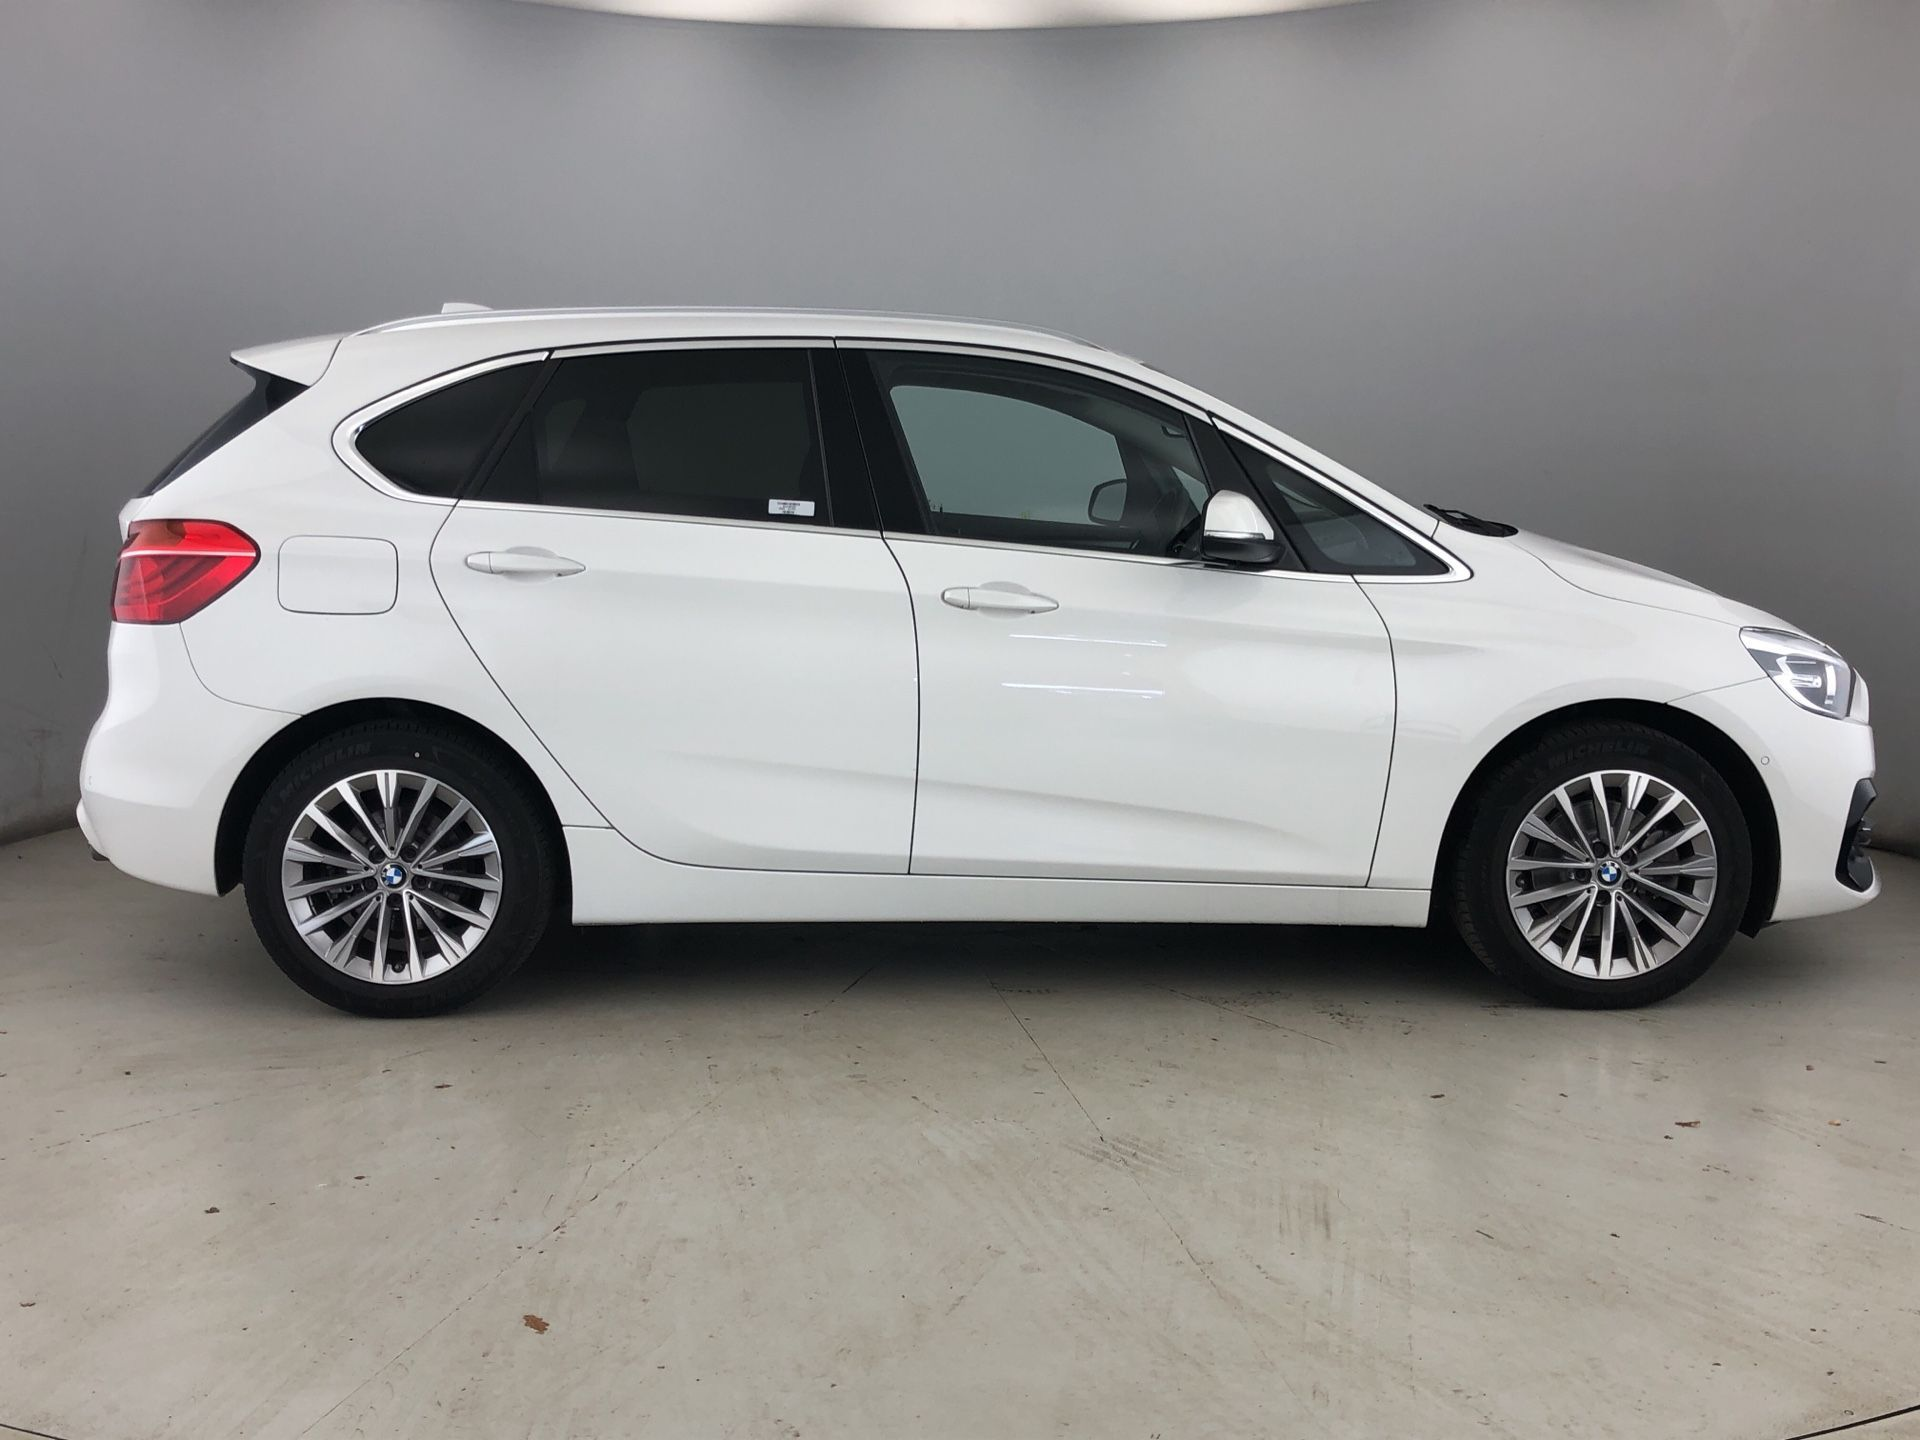 Image 3 - BMW 220d Luxury Active Tourer (YK68DJO)